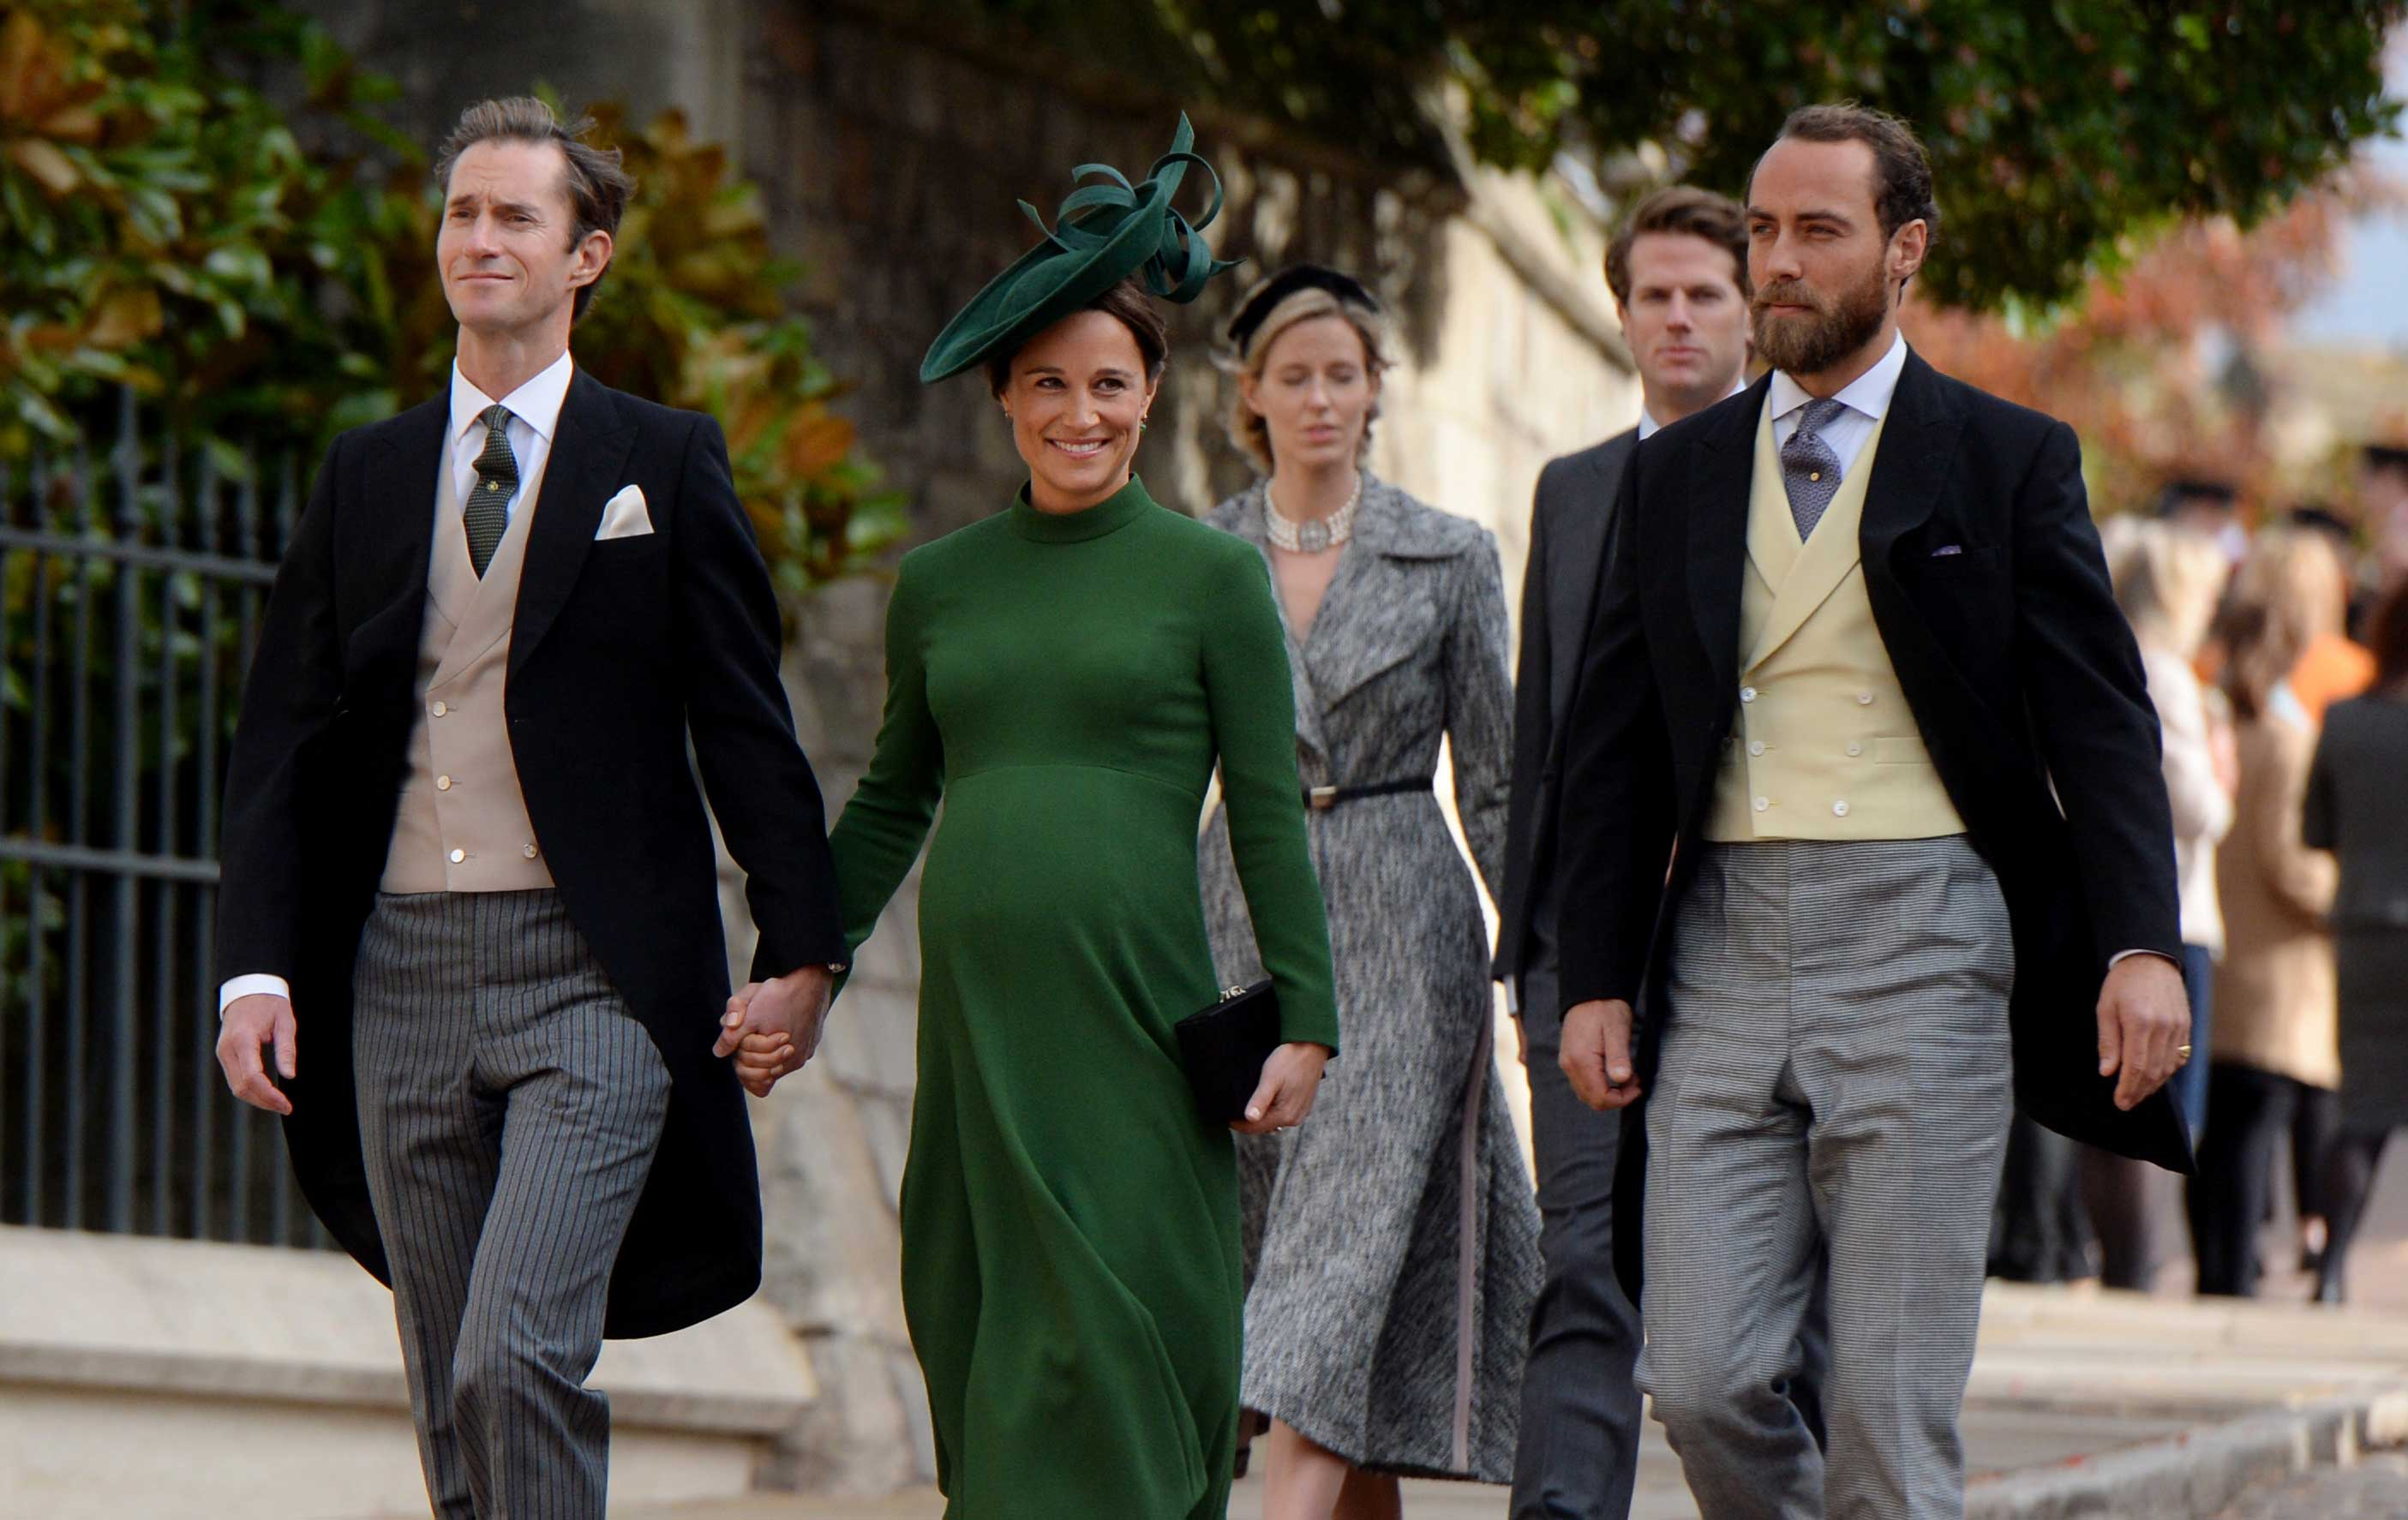 James Matthews, Pippa Middleton and James Middleton